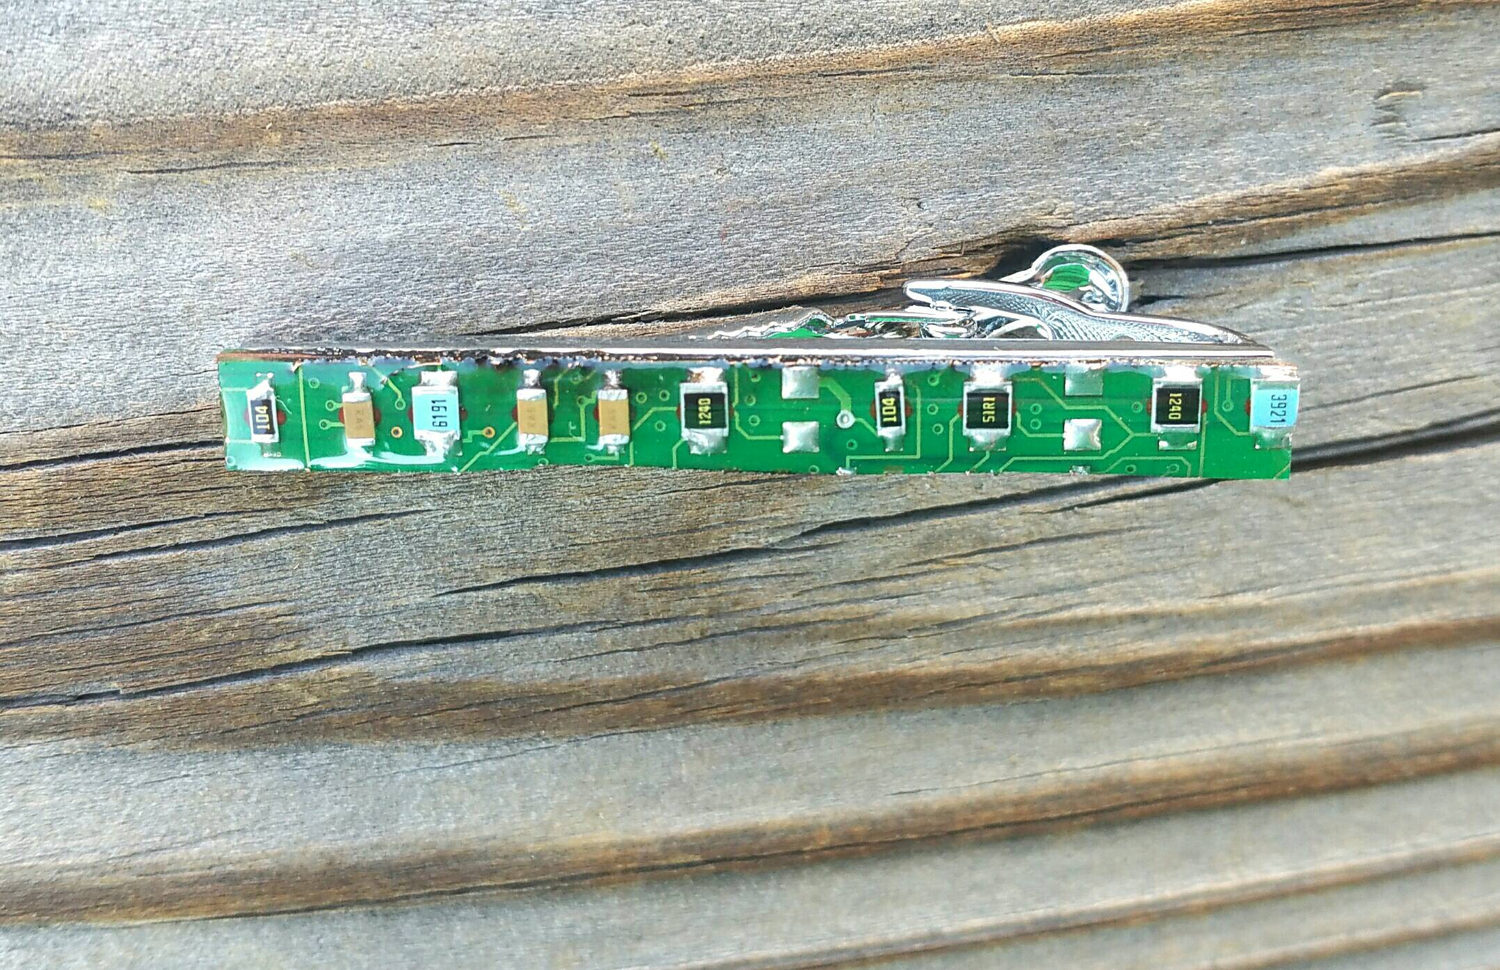 Motherboard tie bar. Circuit board tie bar clip, made from actual upcycled obsolete motherboard in gloss resin on silver plated clip bar